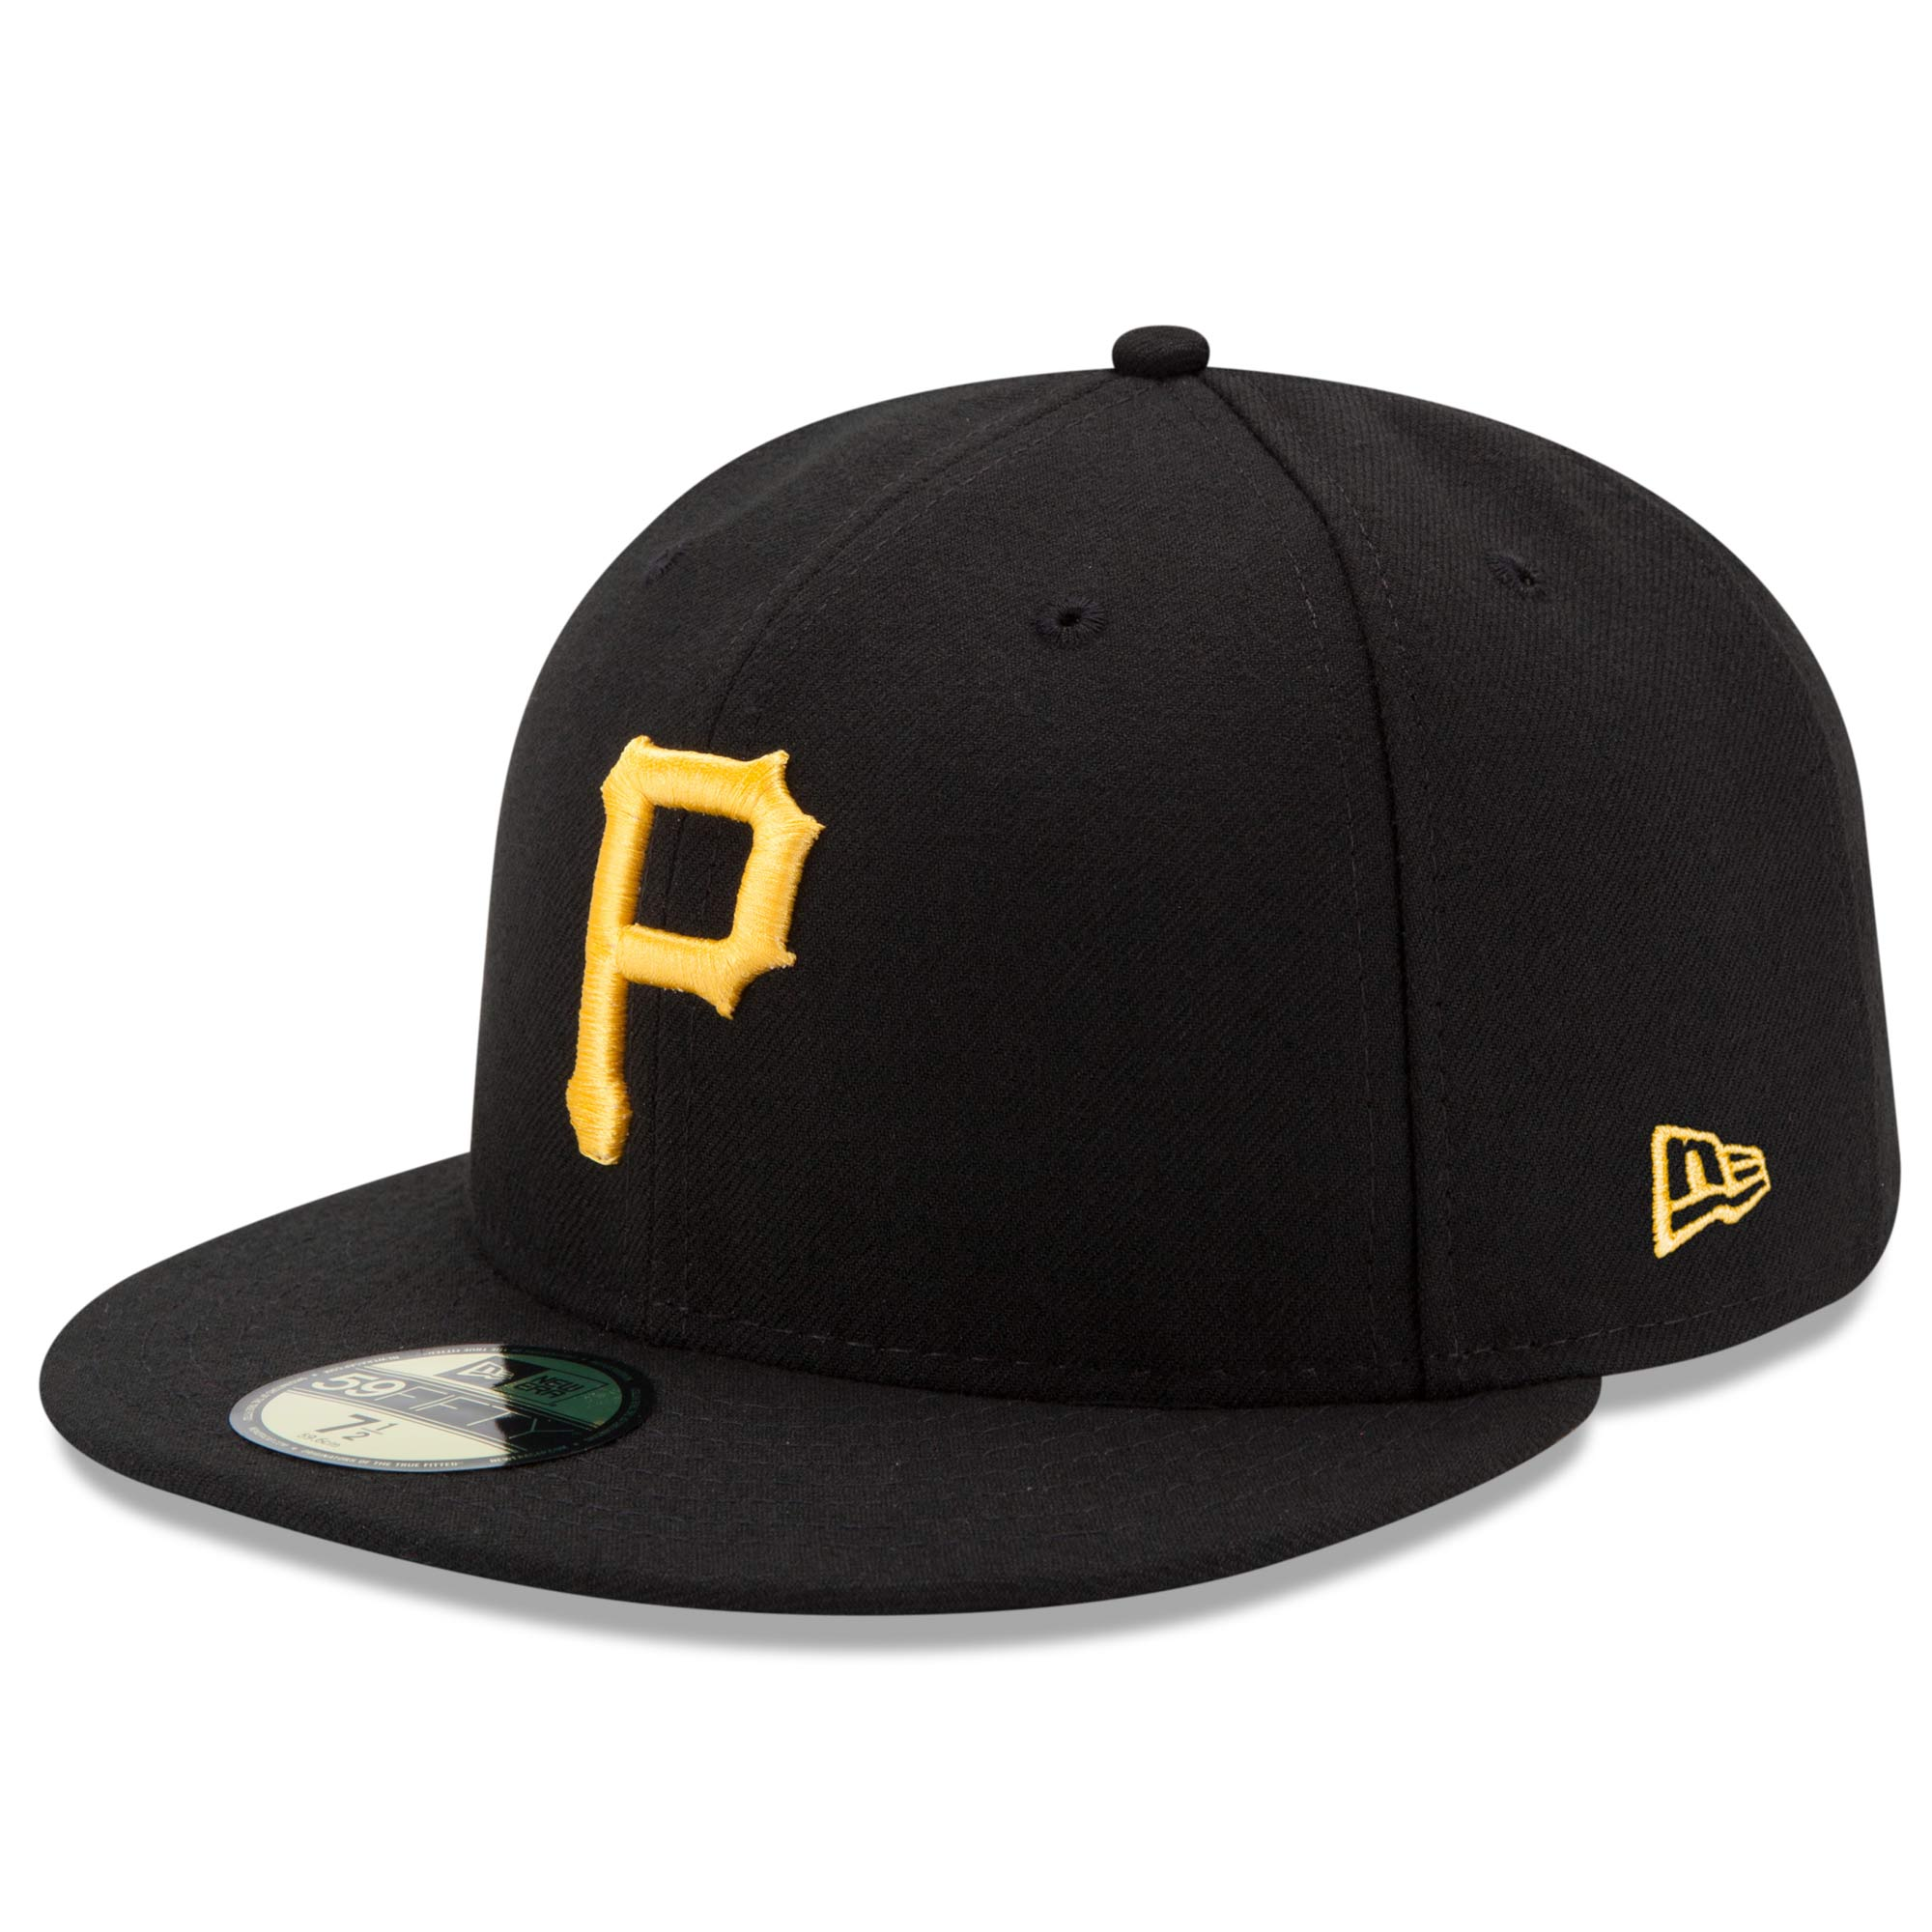 new era mens pittsburgh pirates black game authentic collection on-field 59fifty fitted hat, black/red, 7 3/4